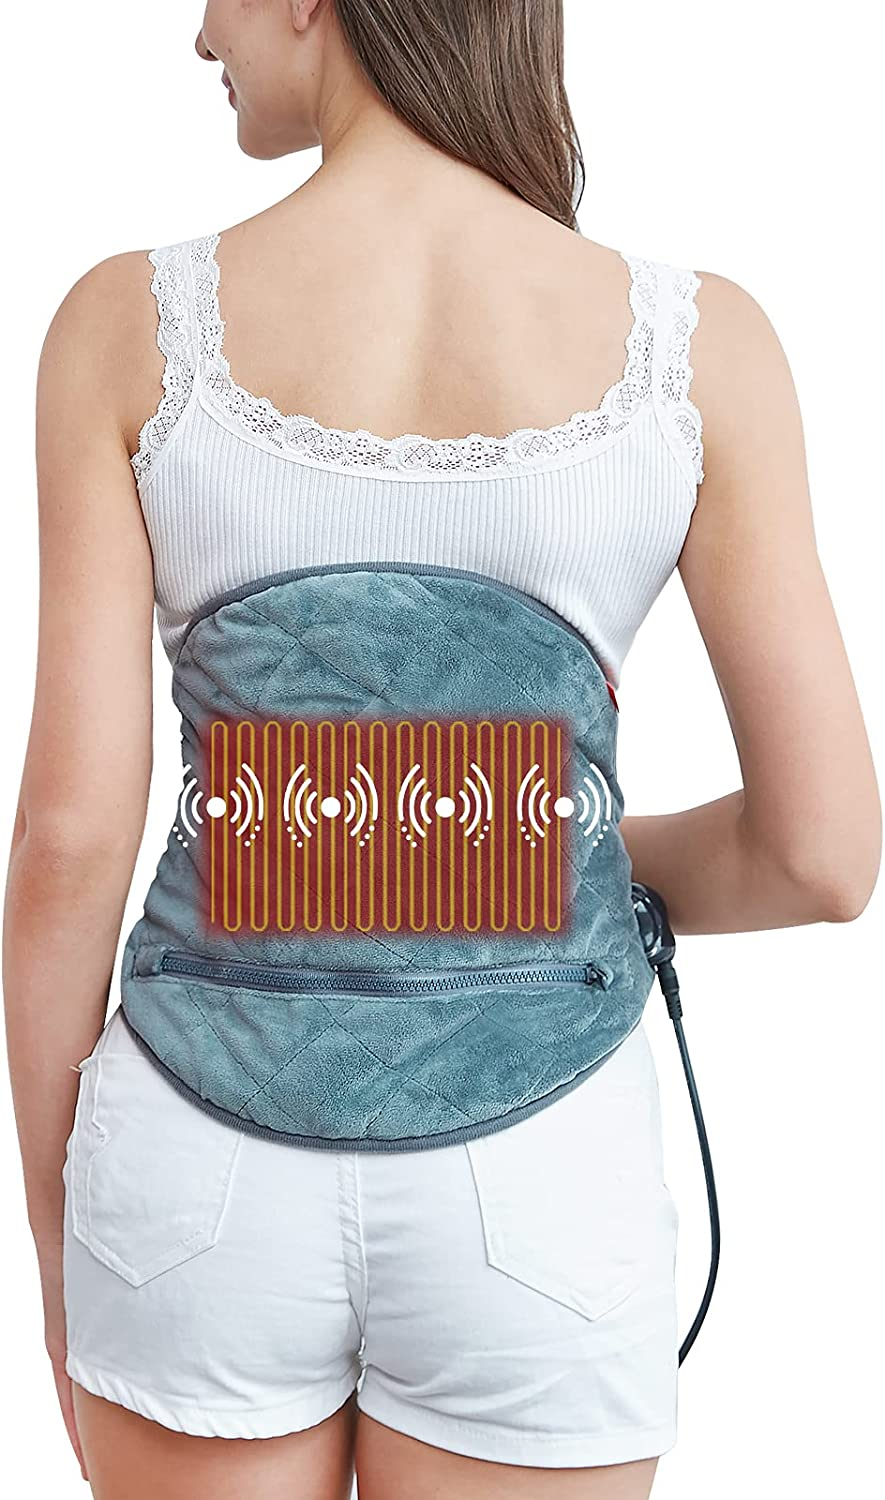 Washable Massage Heating Pad for Back Relief Pain Max 81% OFF New product type Pads